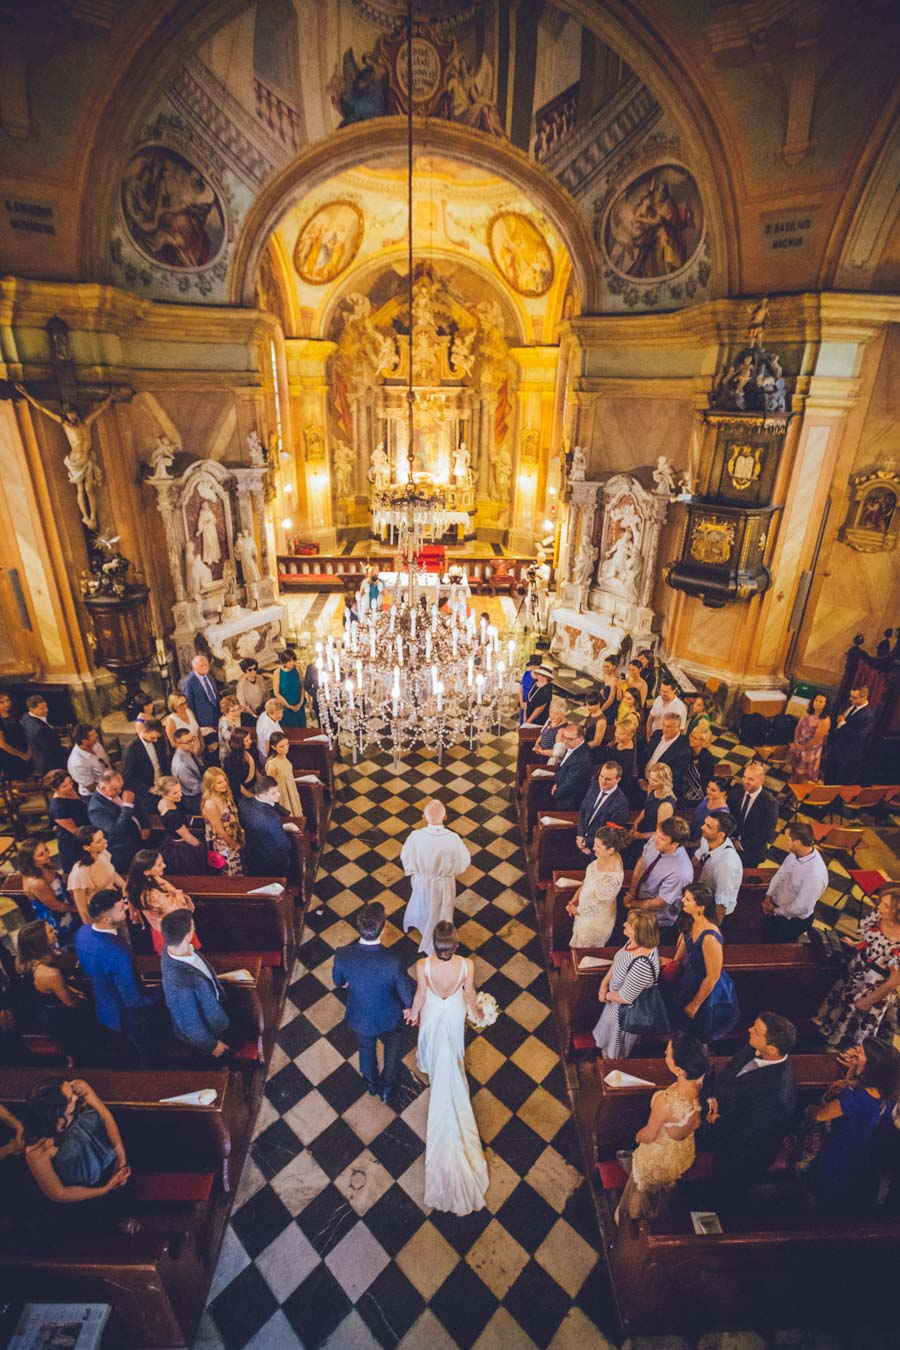 Image /var/www/vhosts/lvps92-60-120-255.vps.webfusion.co.uk/weddingphotographyselect/international/log-in/profiles/server/php/files/4033/WPS 09.jpg By Matija + Marina Weddings